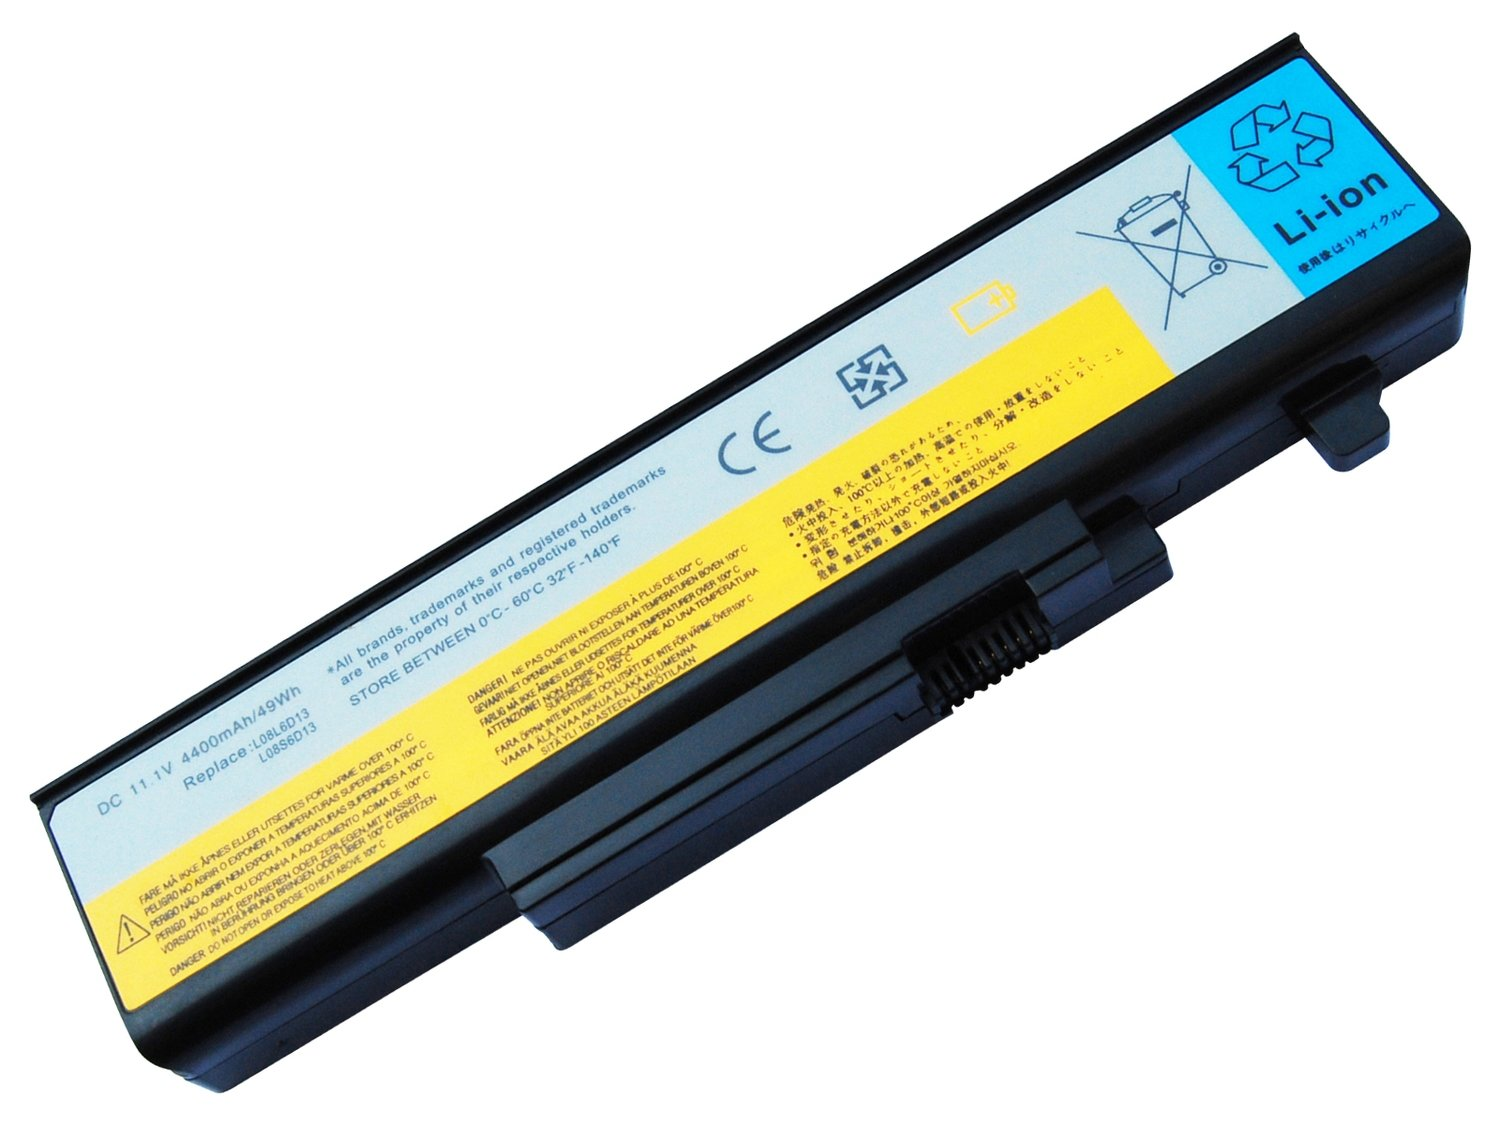 Lenovo IdeaPad Y450 4189 Y450A Y450G Y550 Y550A Y550P  series laptop battery